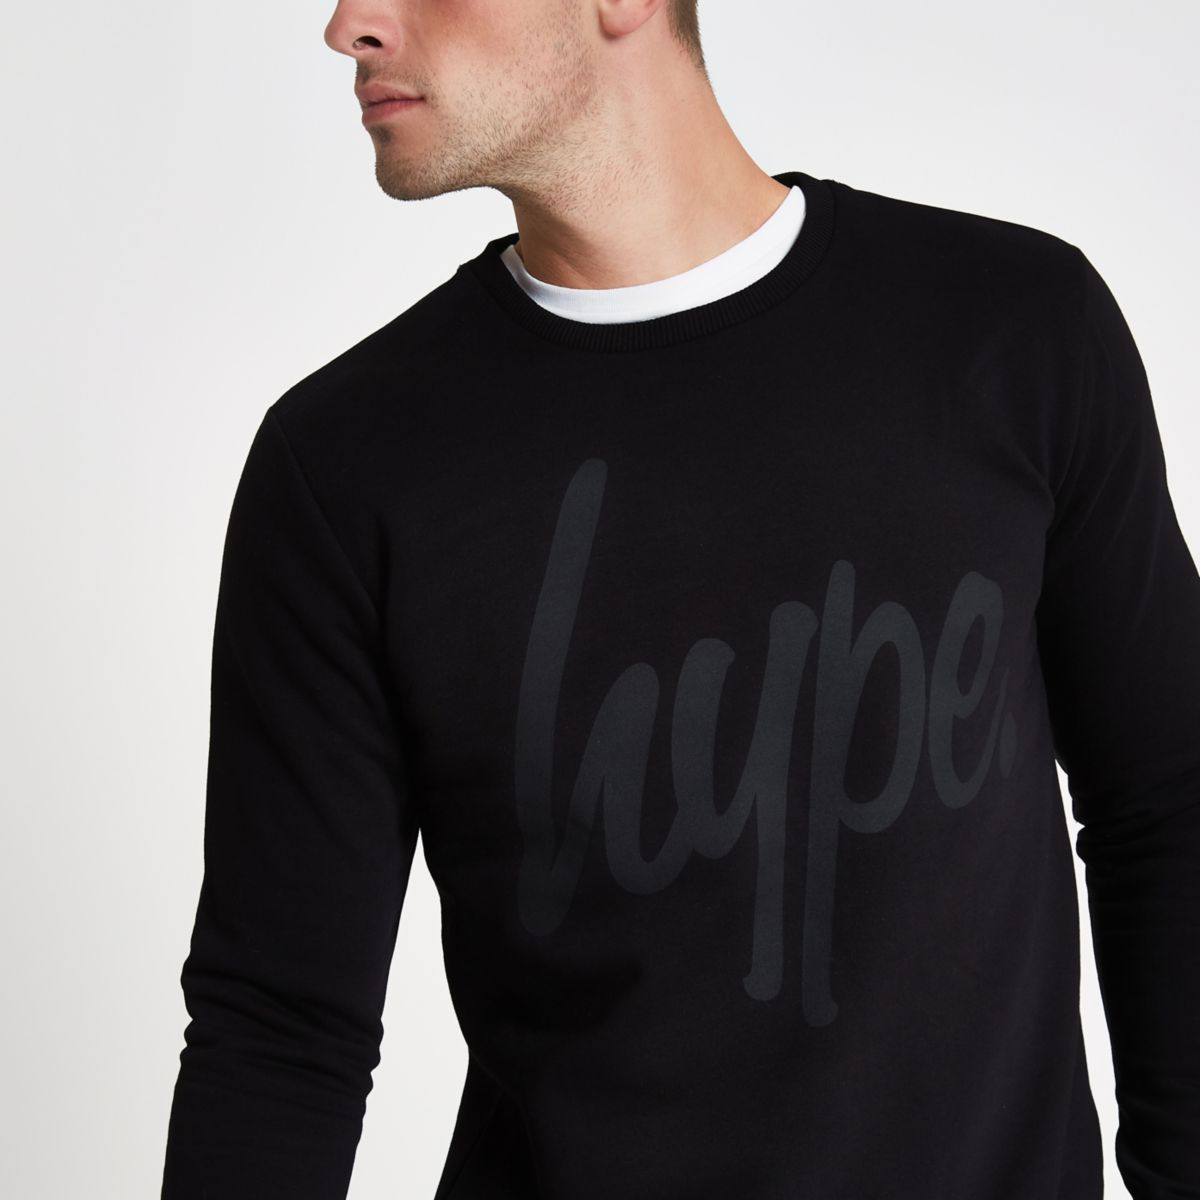 Hype black crew neck sweatshirt